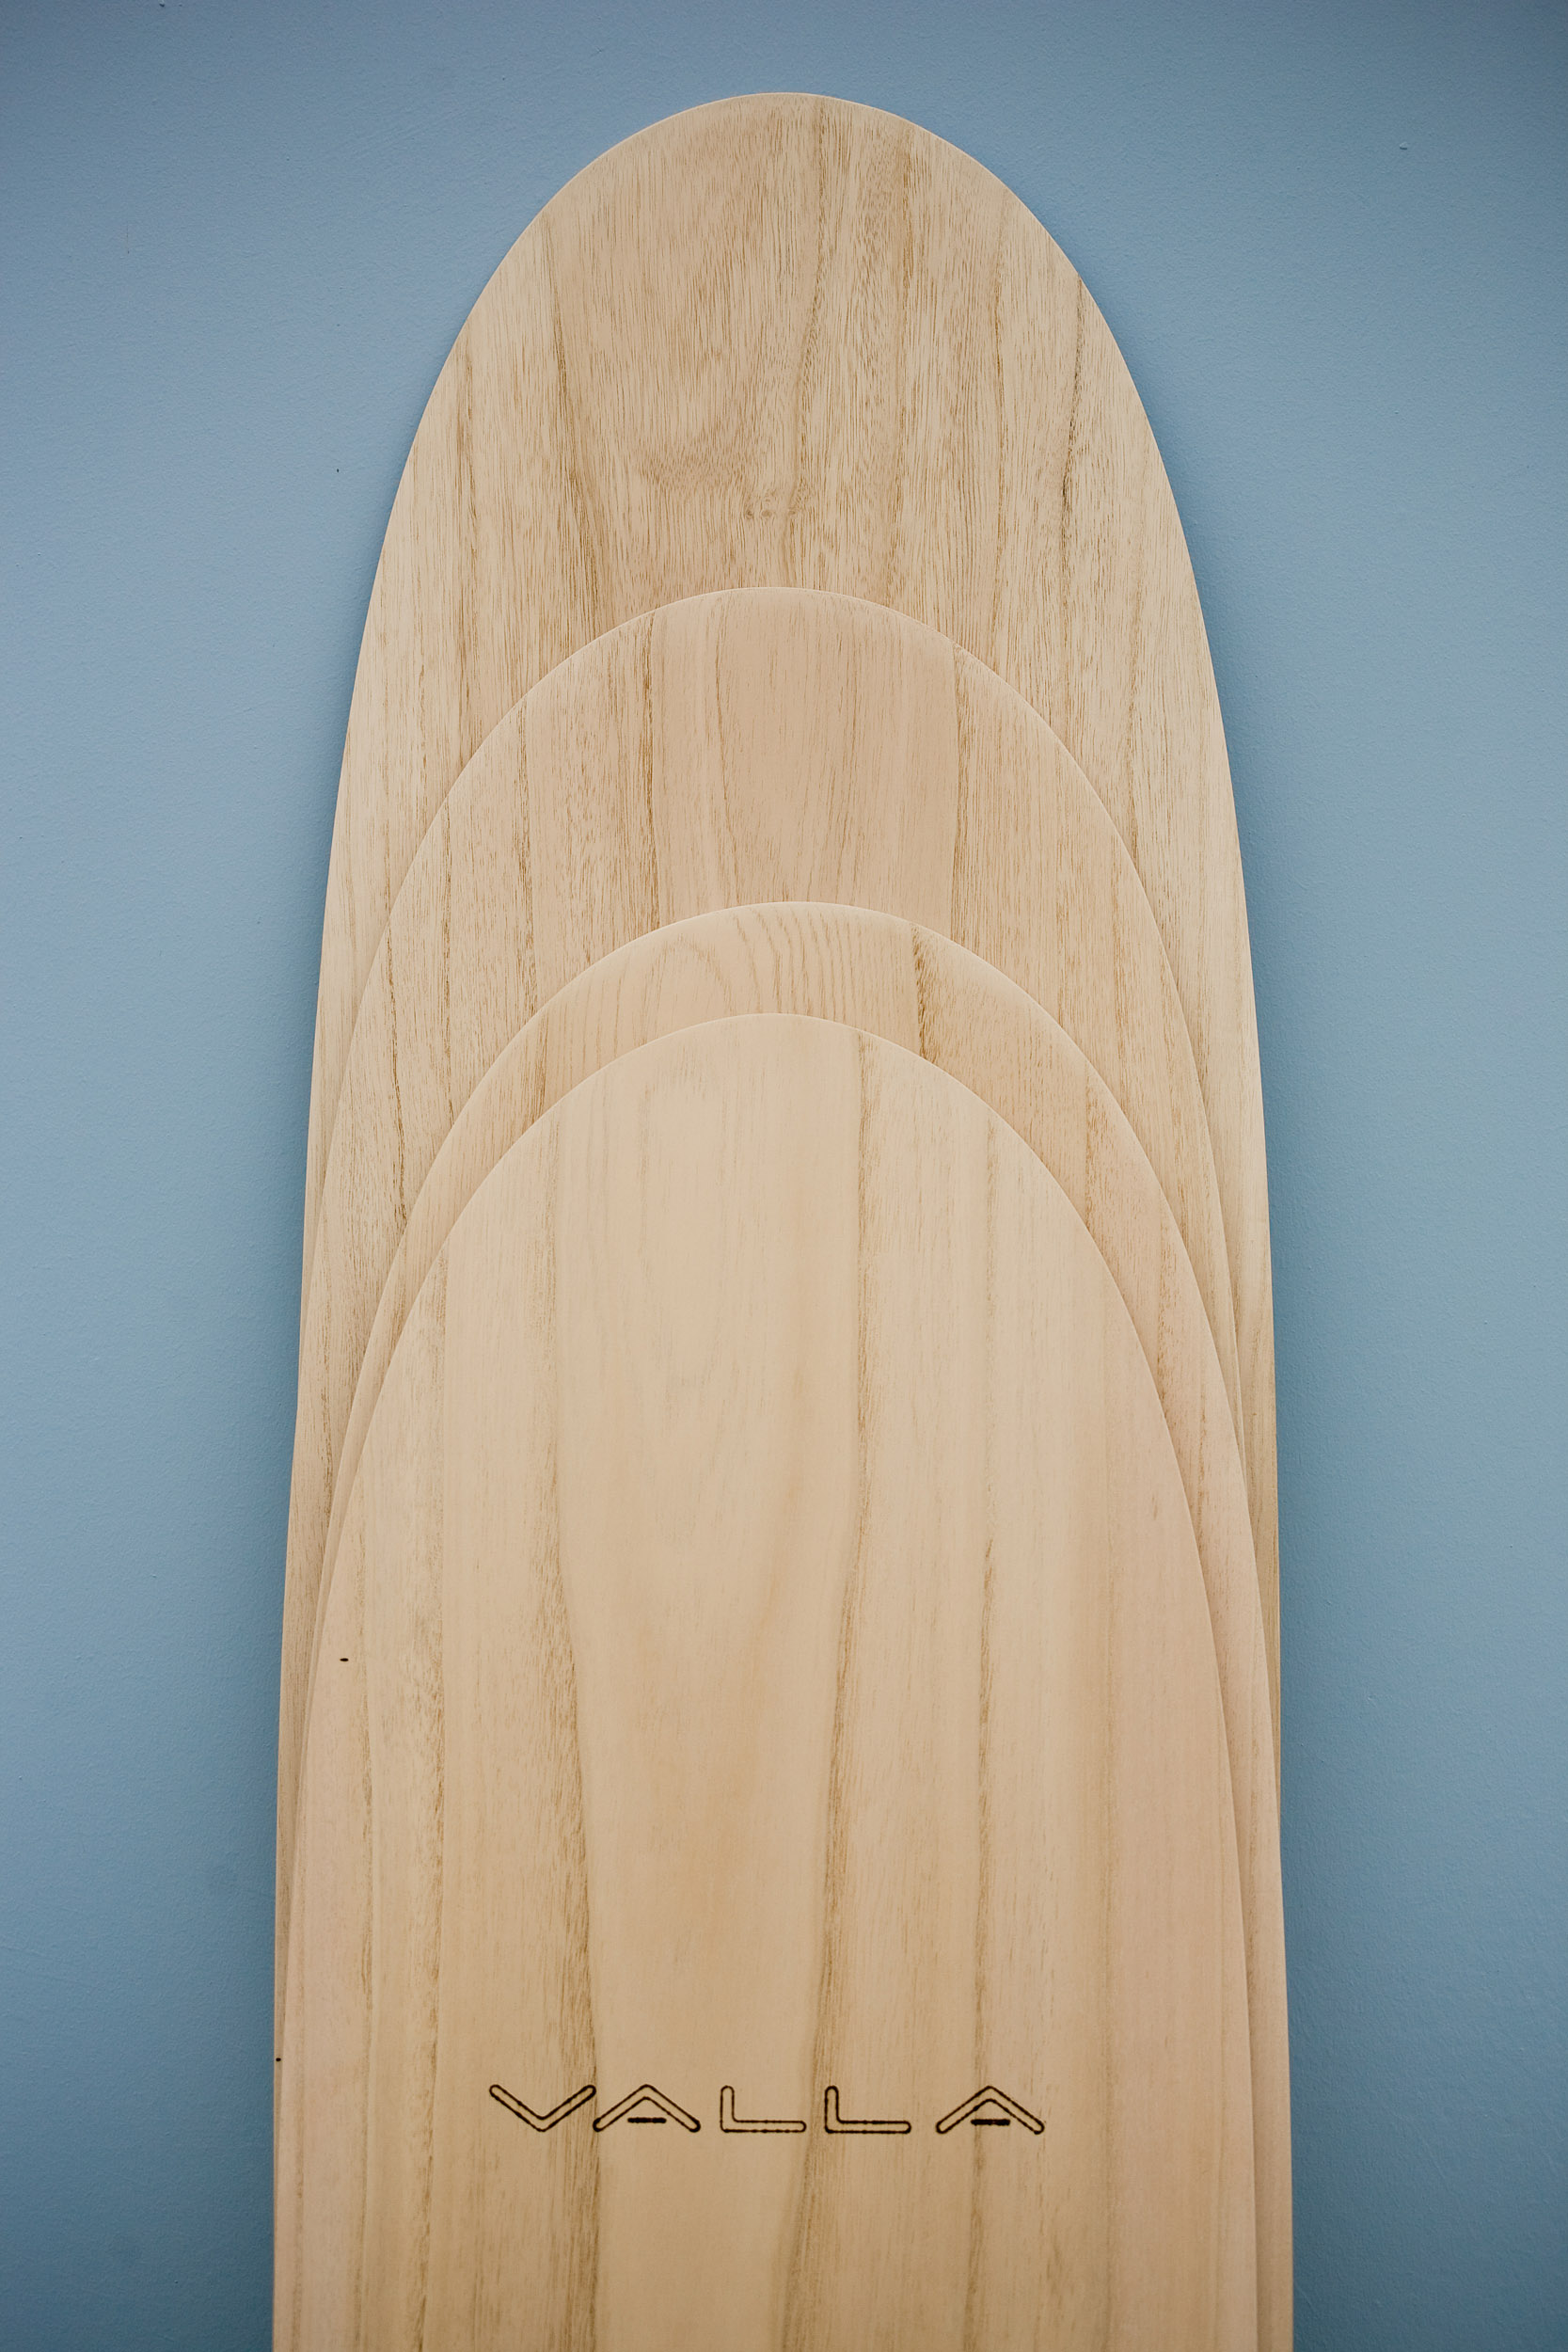 timber-alaia-surfboards-surf-photography.jpg